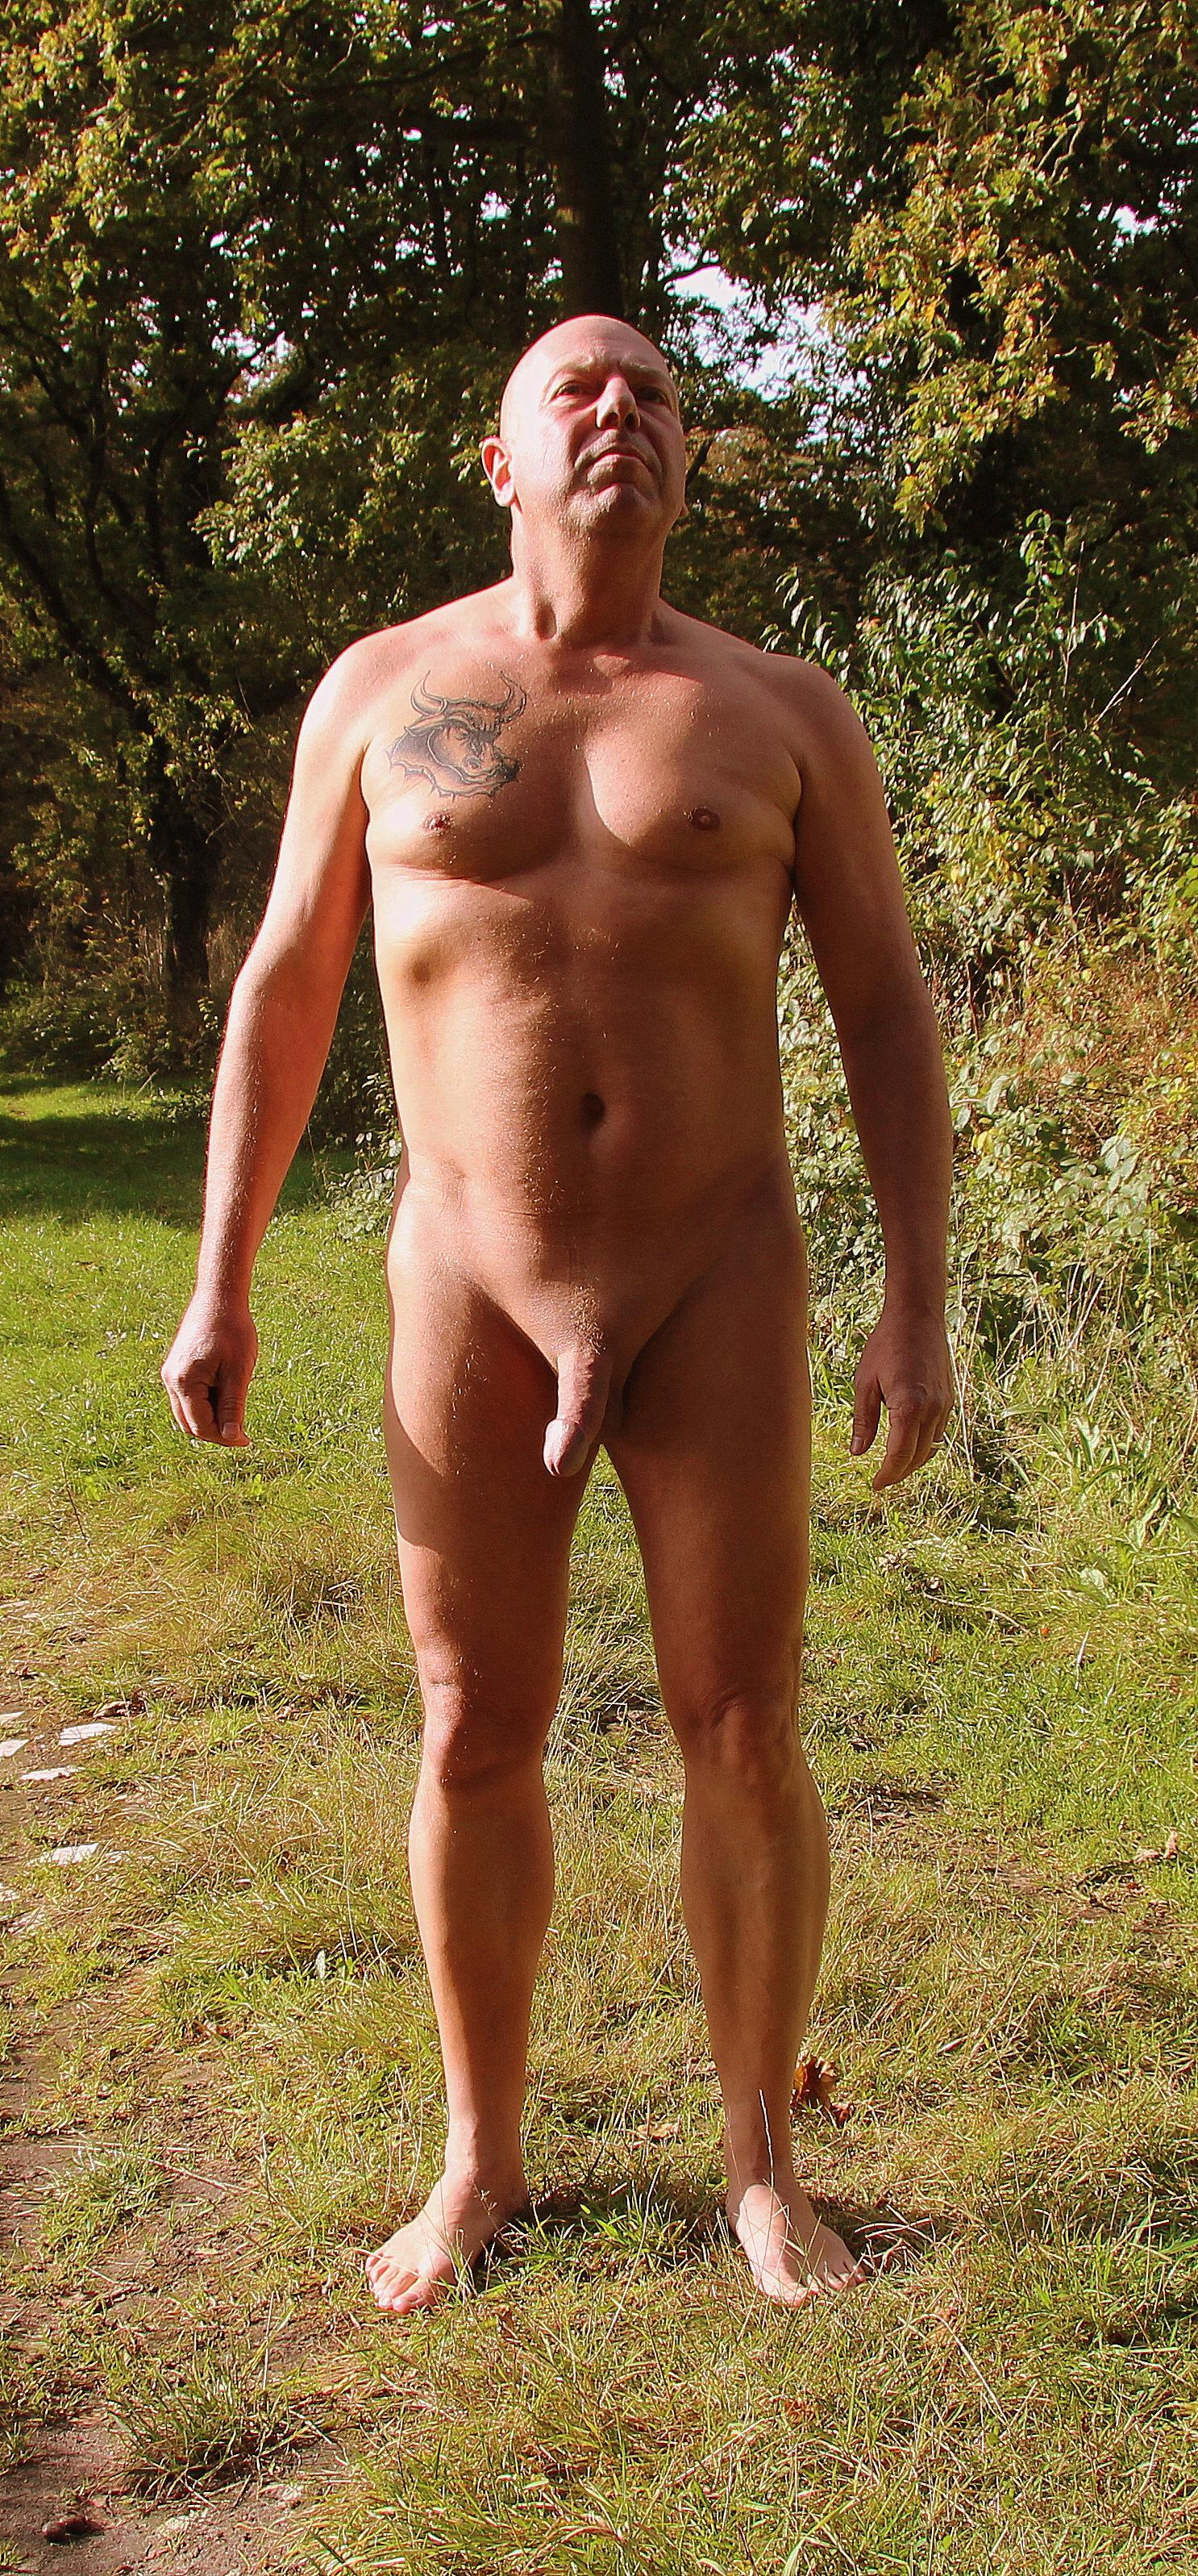 from Peyton photo of gay nude man